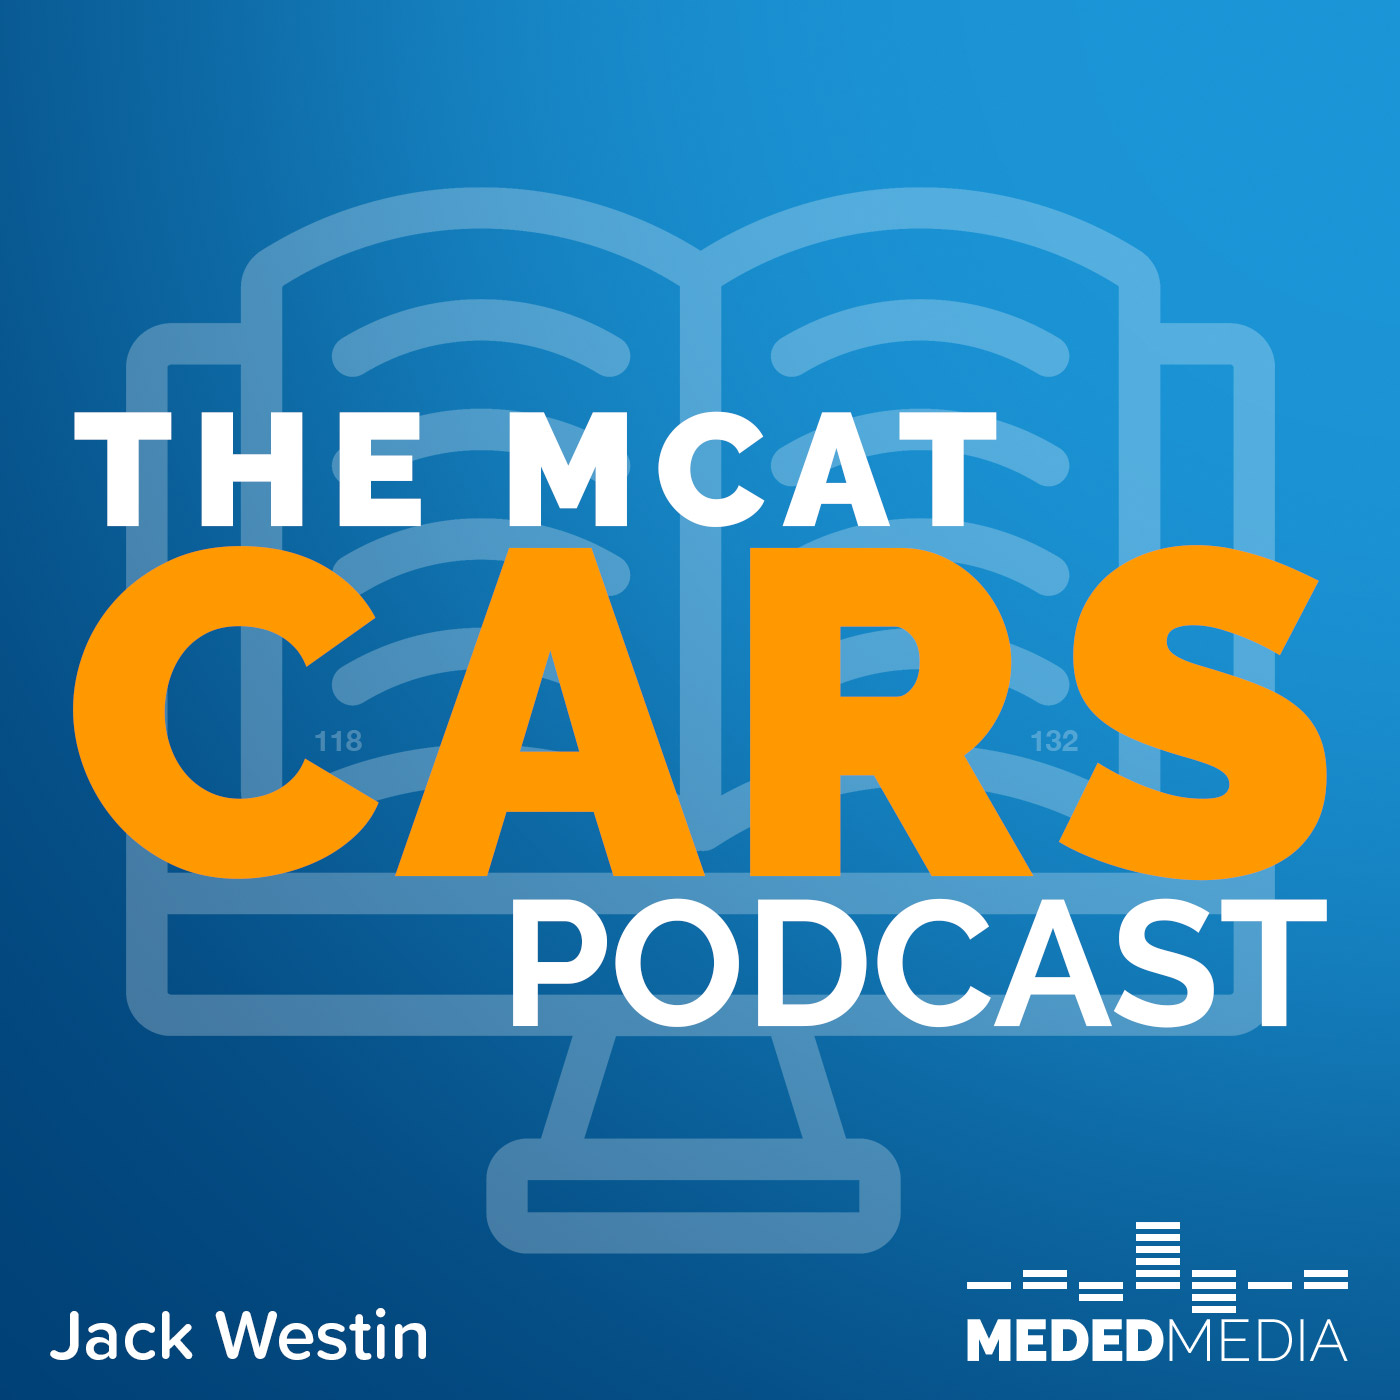 The MCAT CARS Podcast Podcast - Listen, Reviews, Charts - Chartable